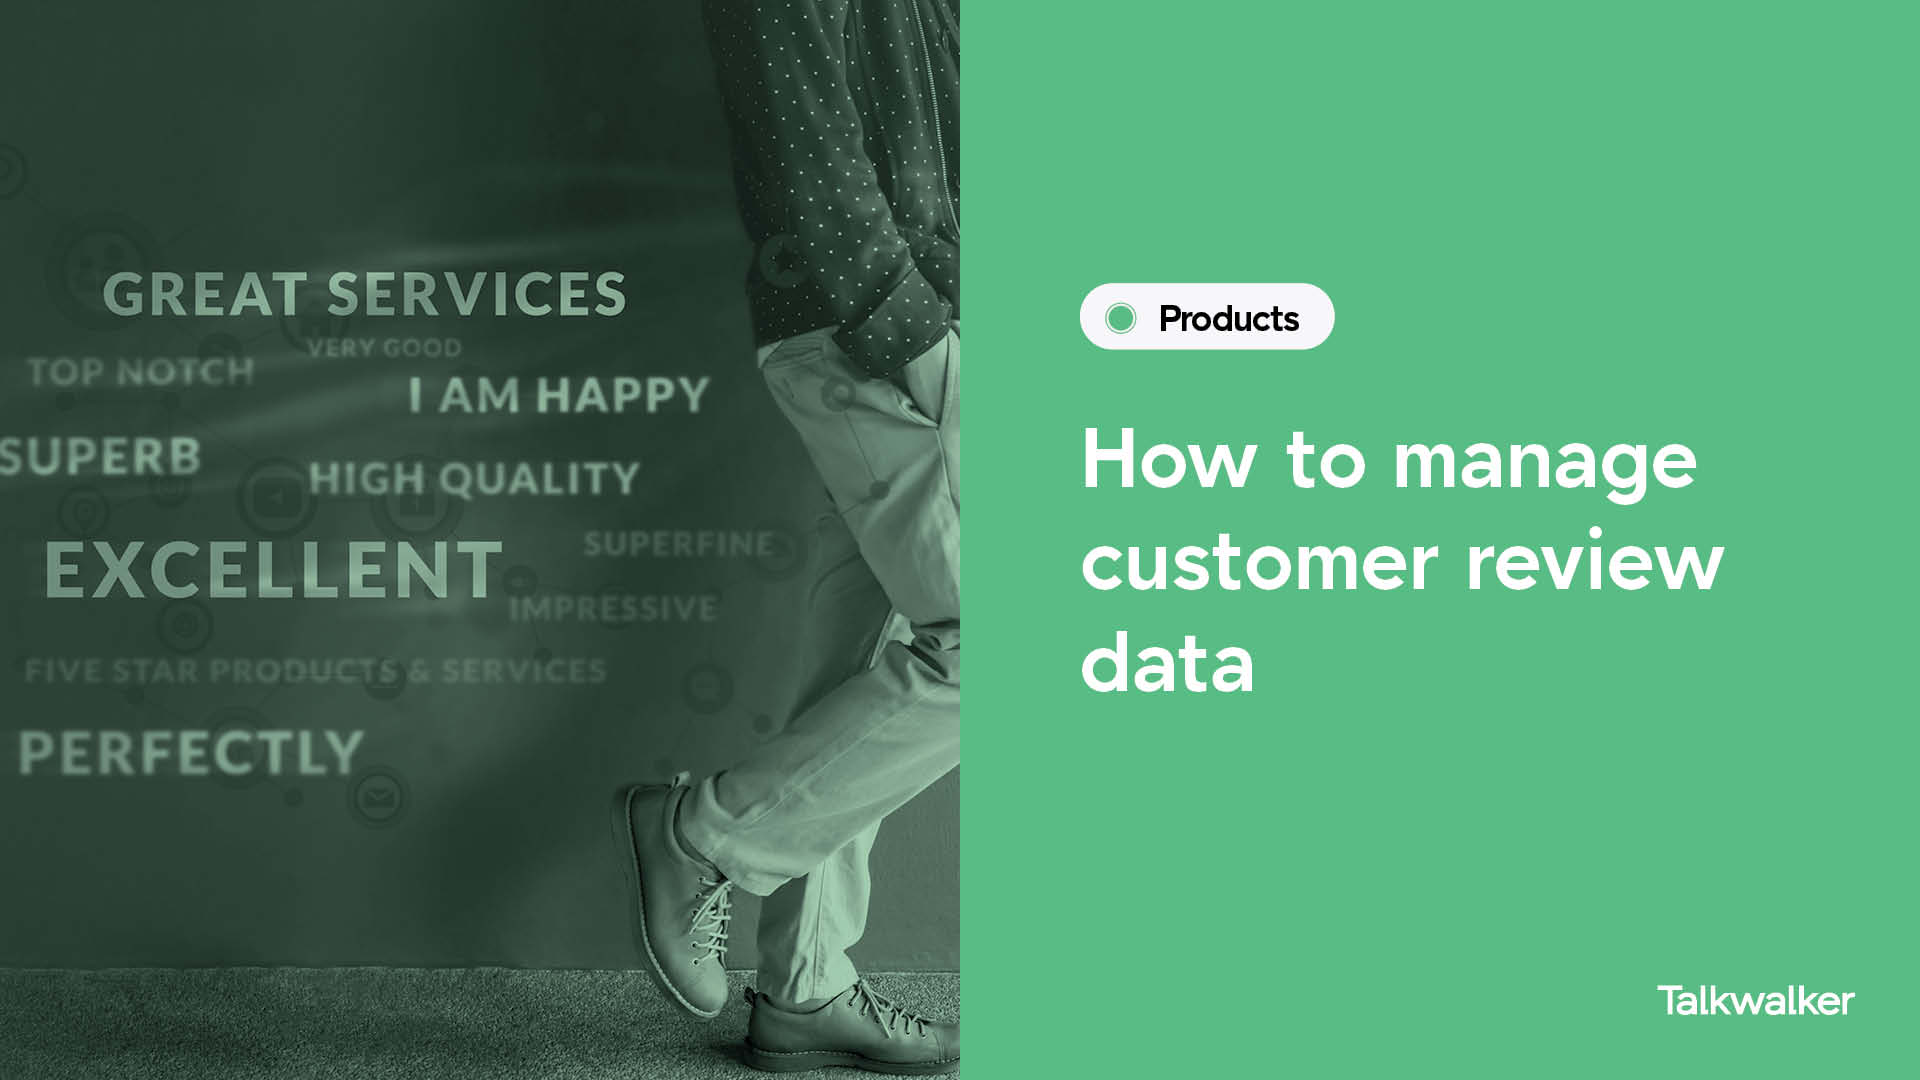 How to manage customer review data - person walking off camera with words behind - great services, excellent, I am happy, high quality, five stars products and services.